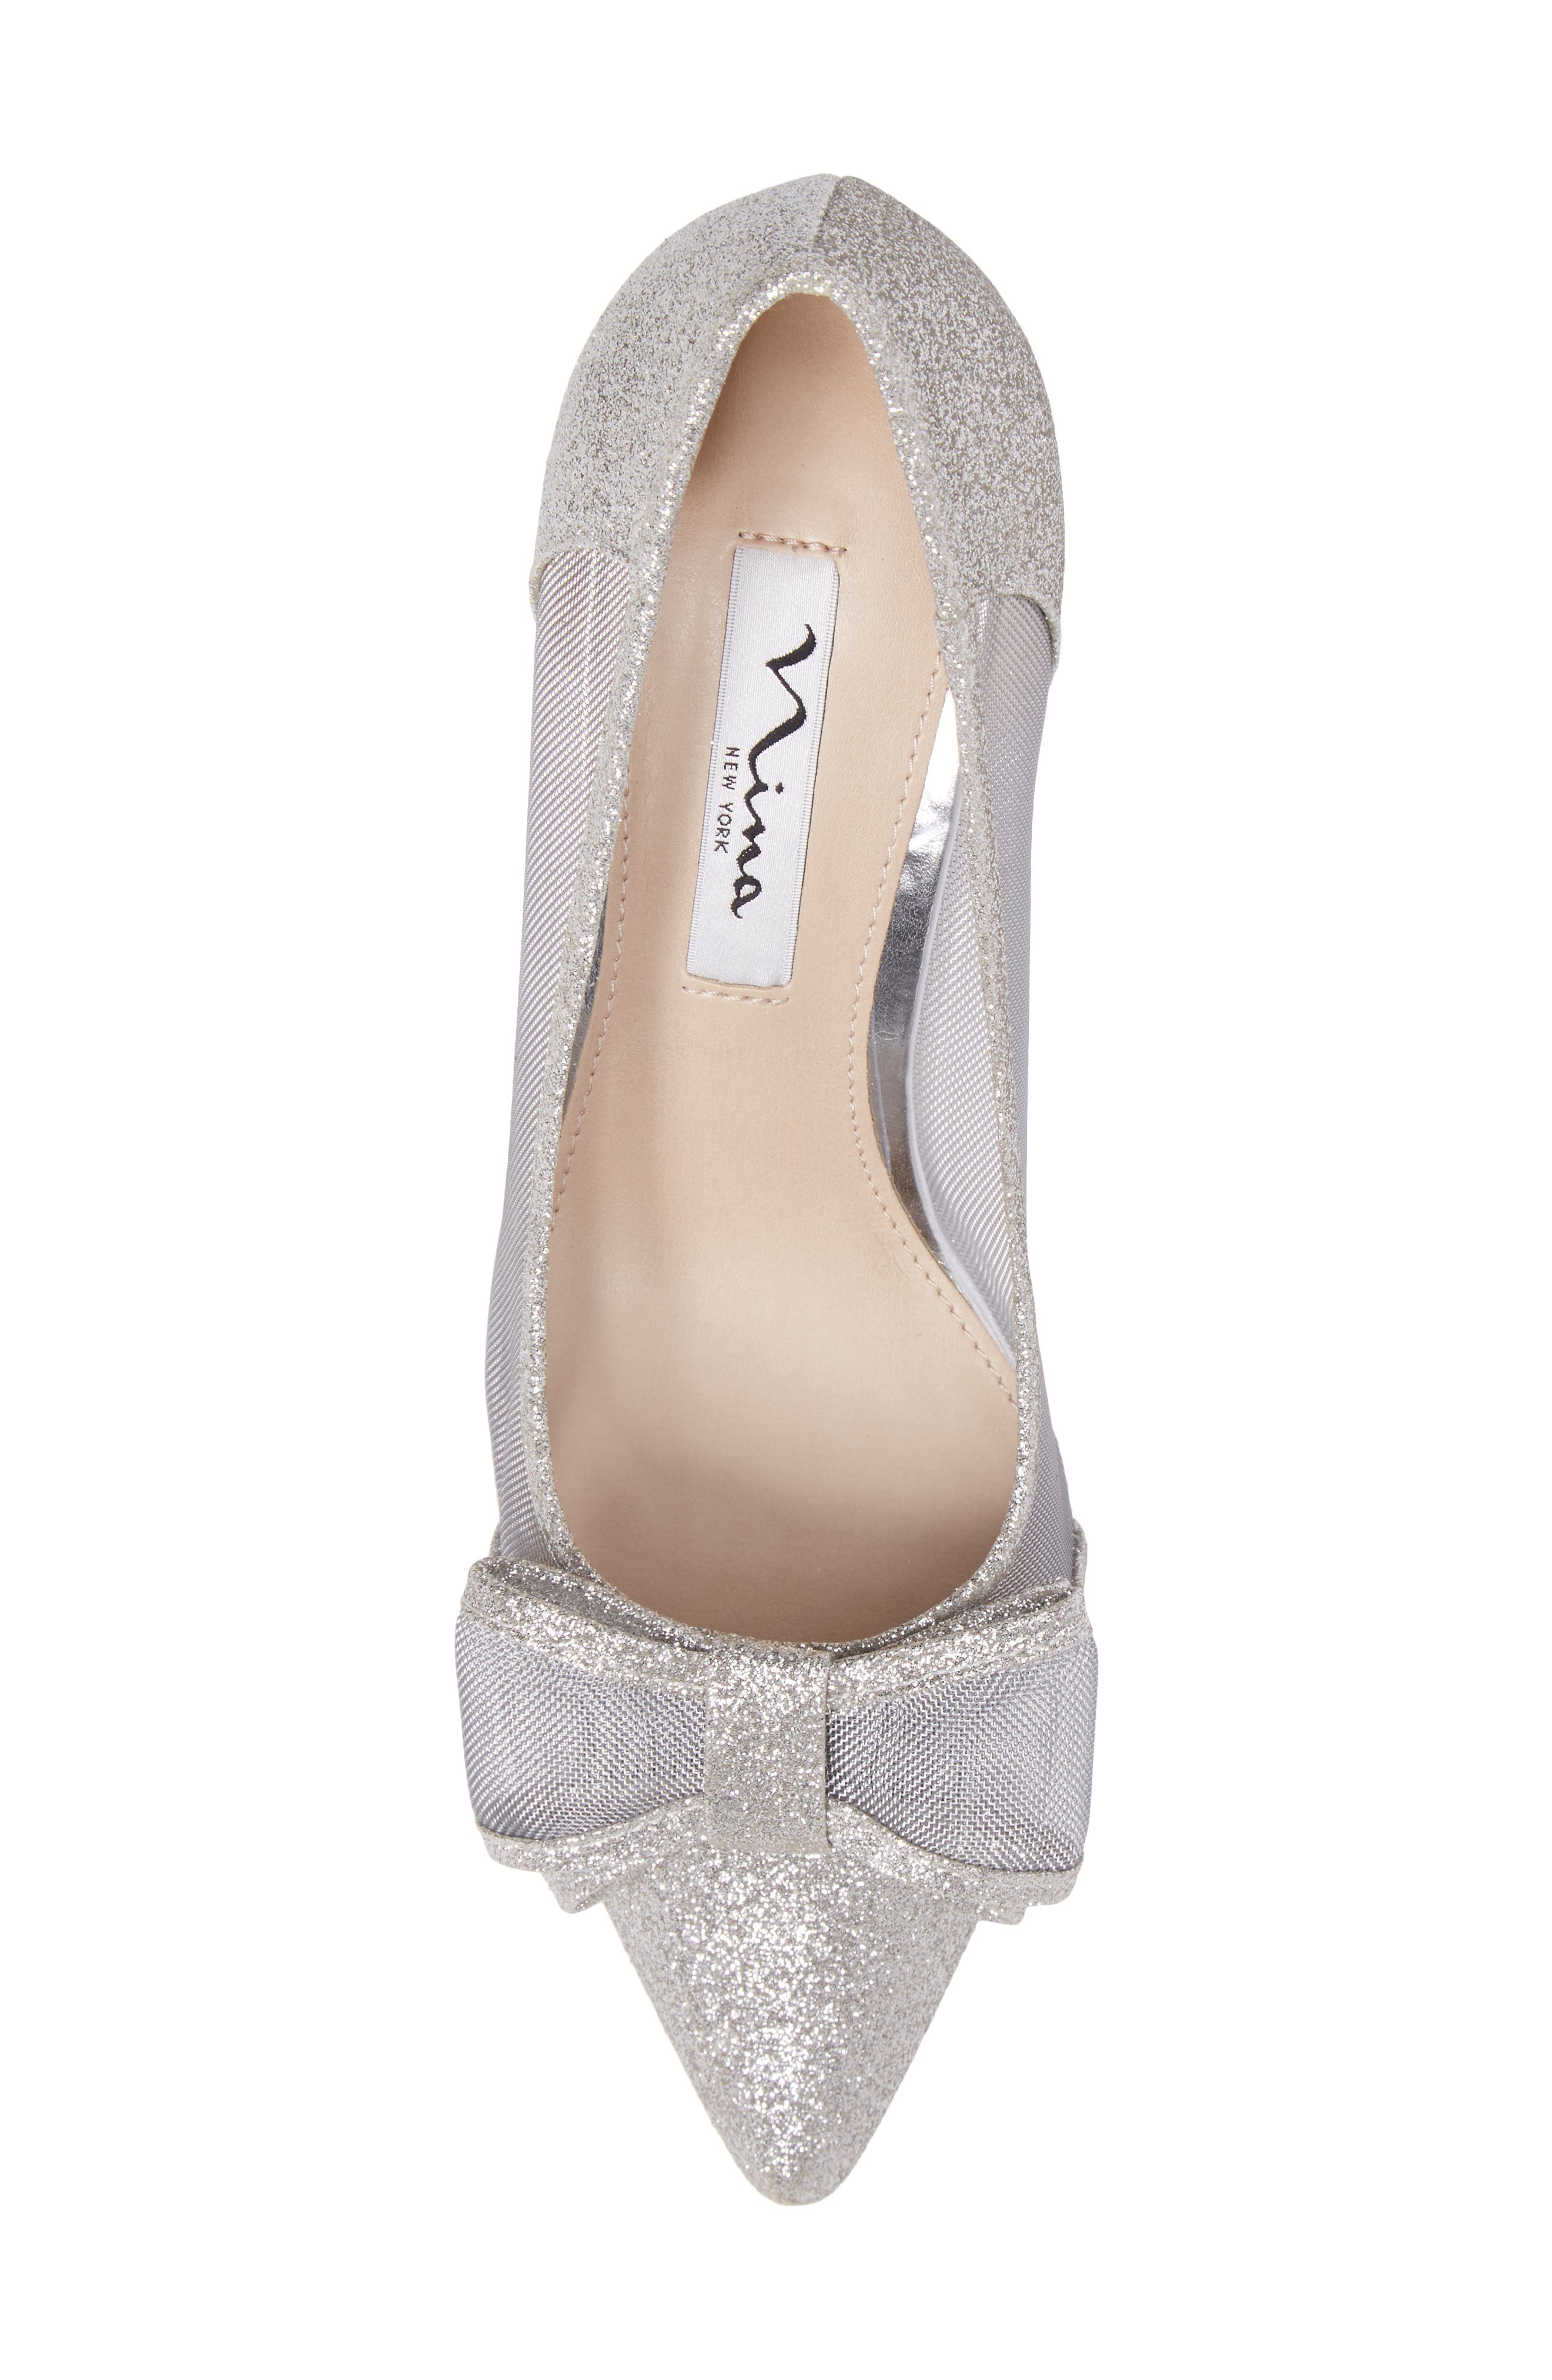 NINA, Bianca Pointy Toe Pump, Alternate thumbnail 5, color, SOFT SILVER GLITTER FABRIC